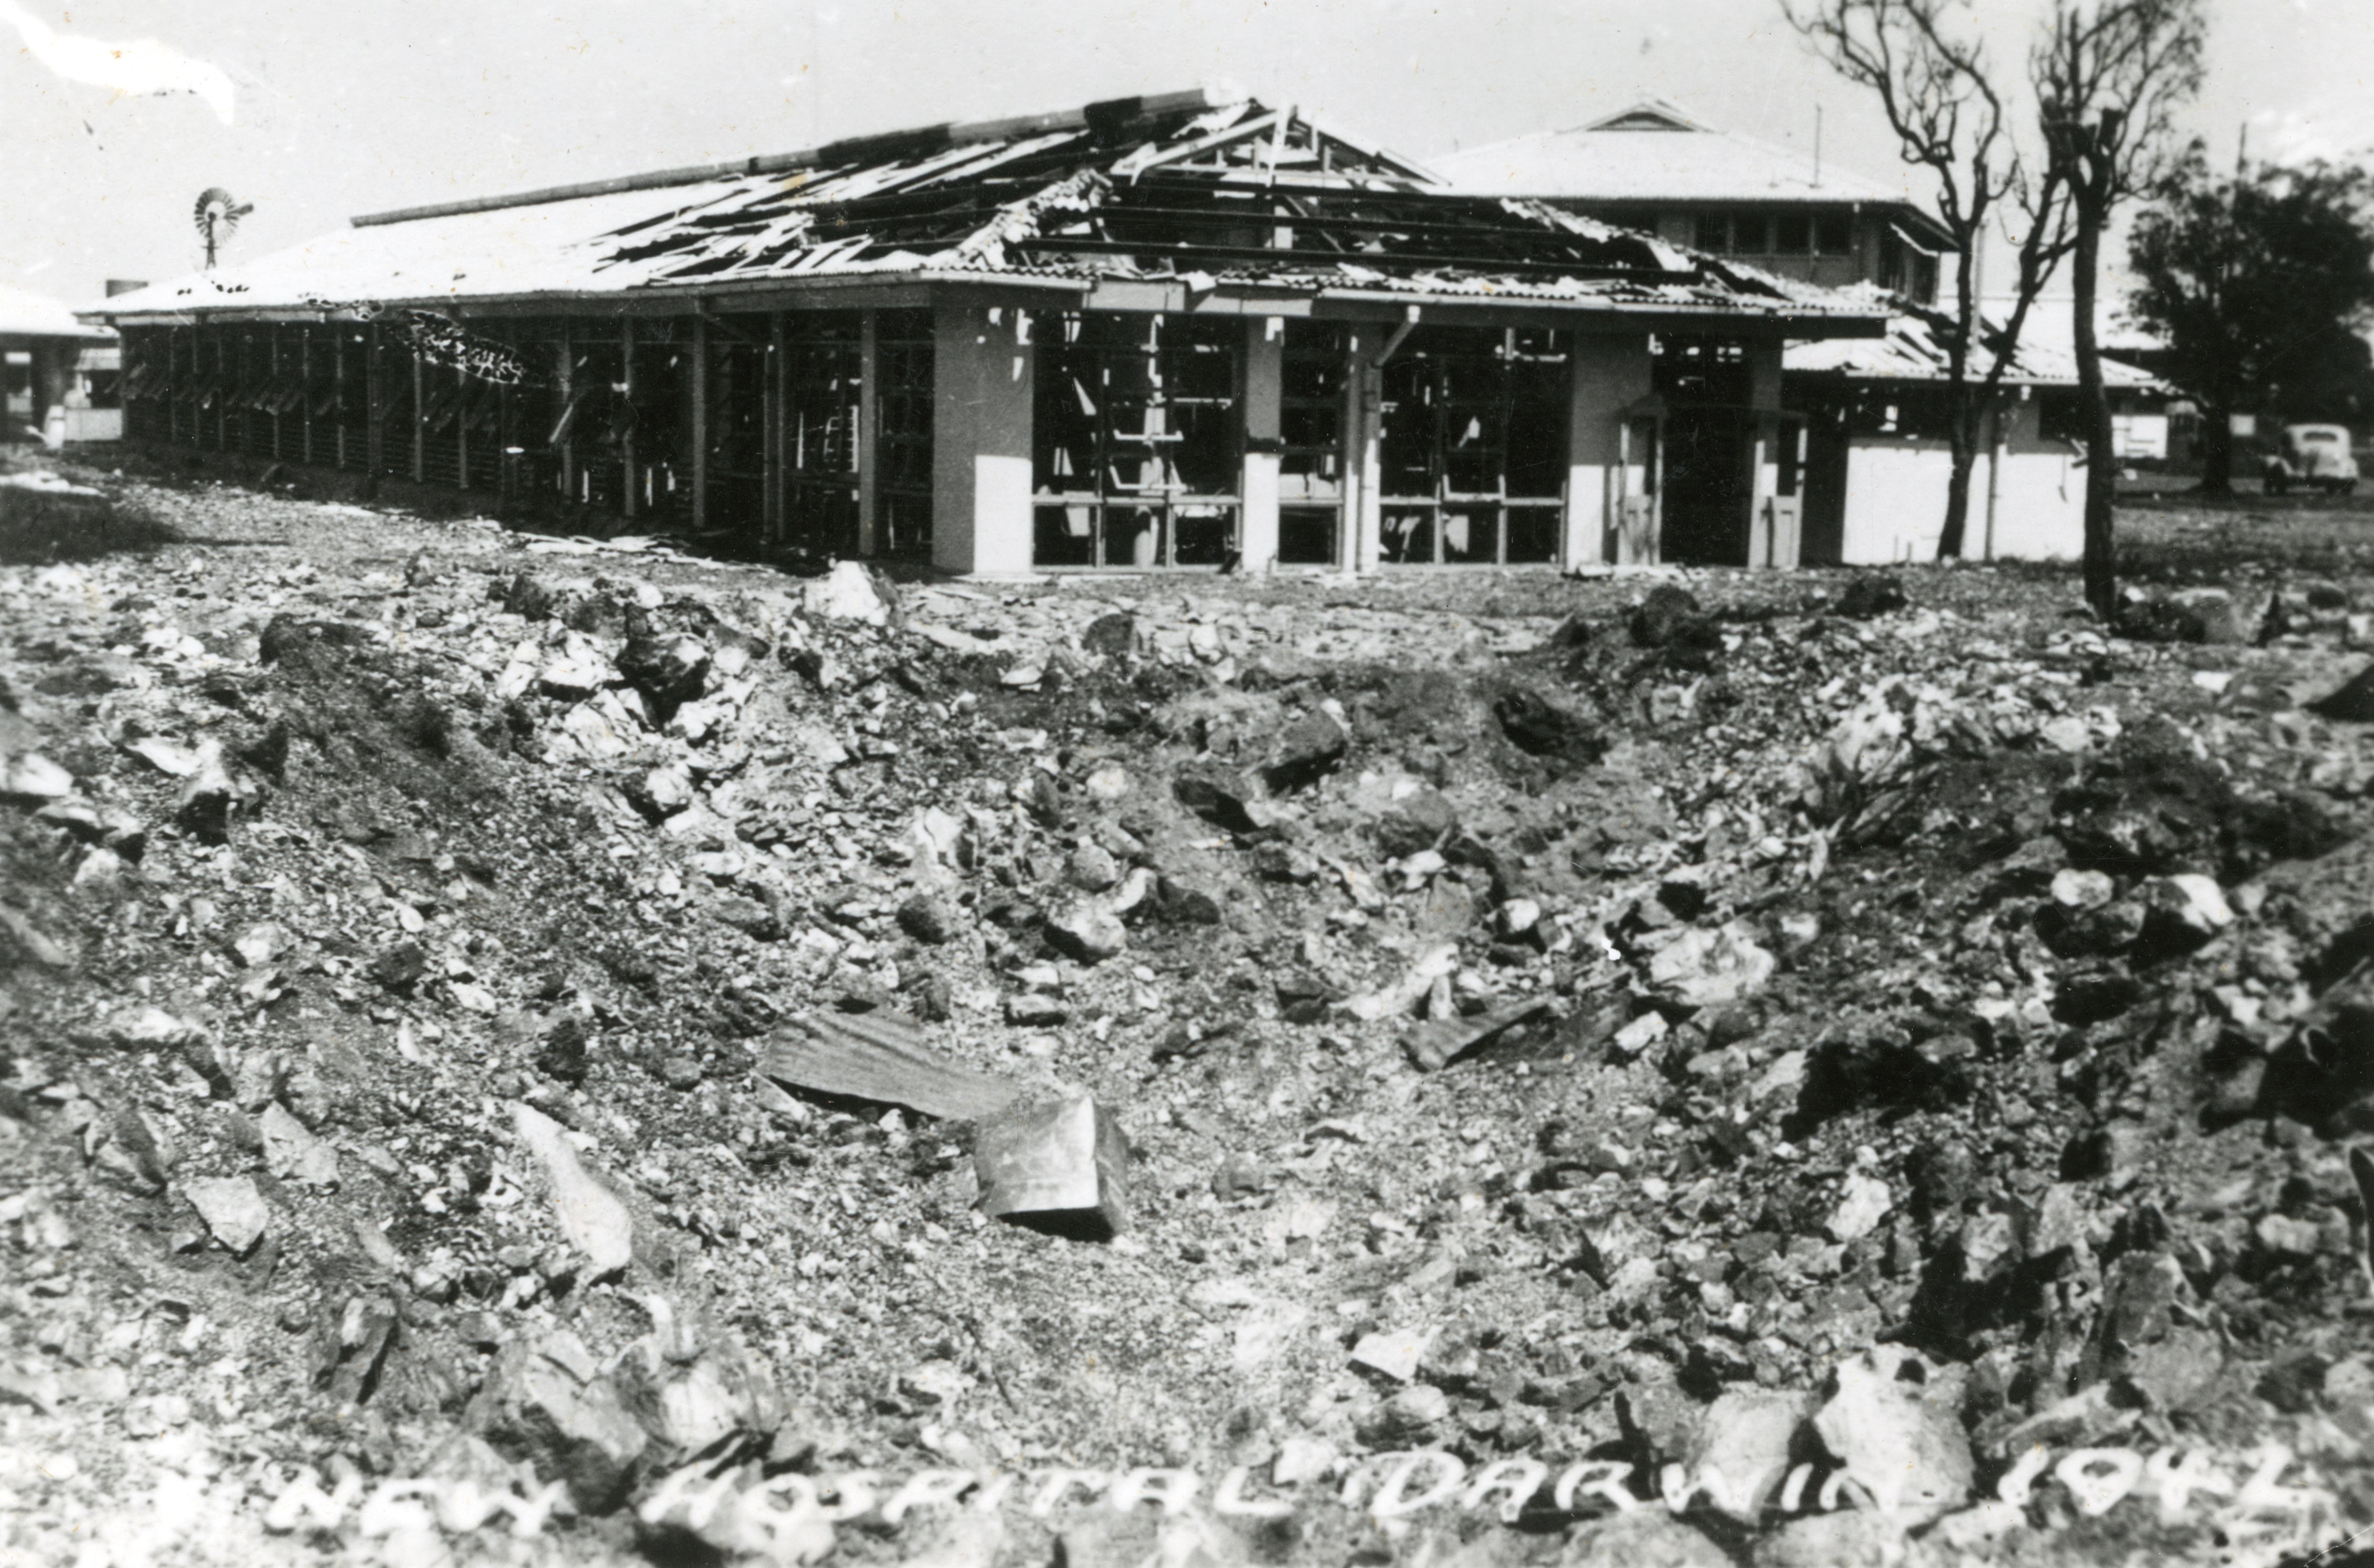 New Hospital Darwin. Bomb damage and crater.